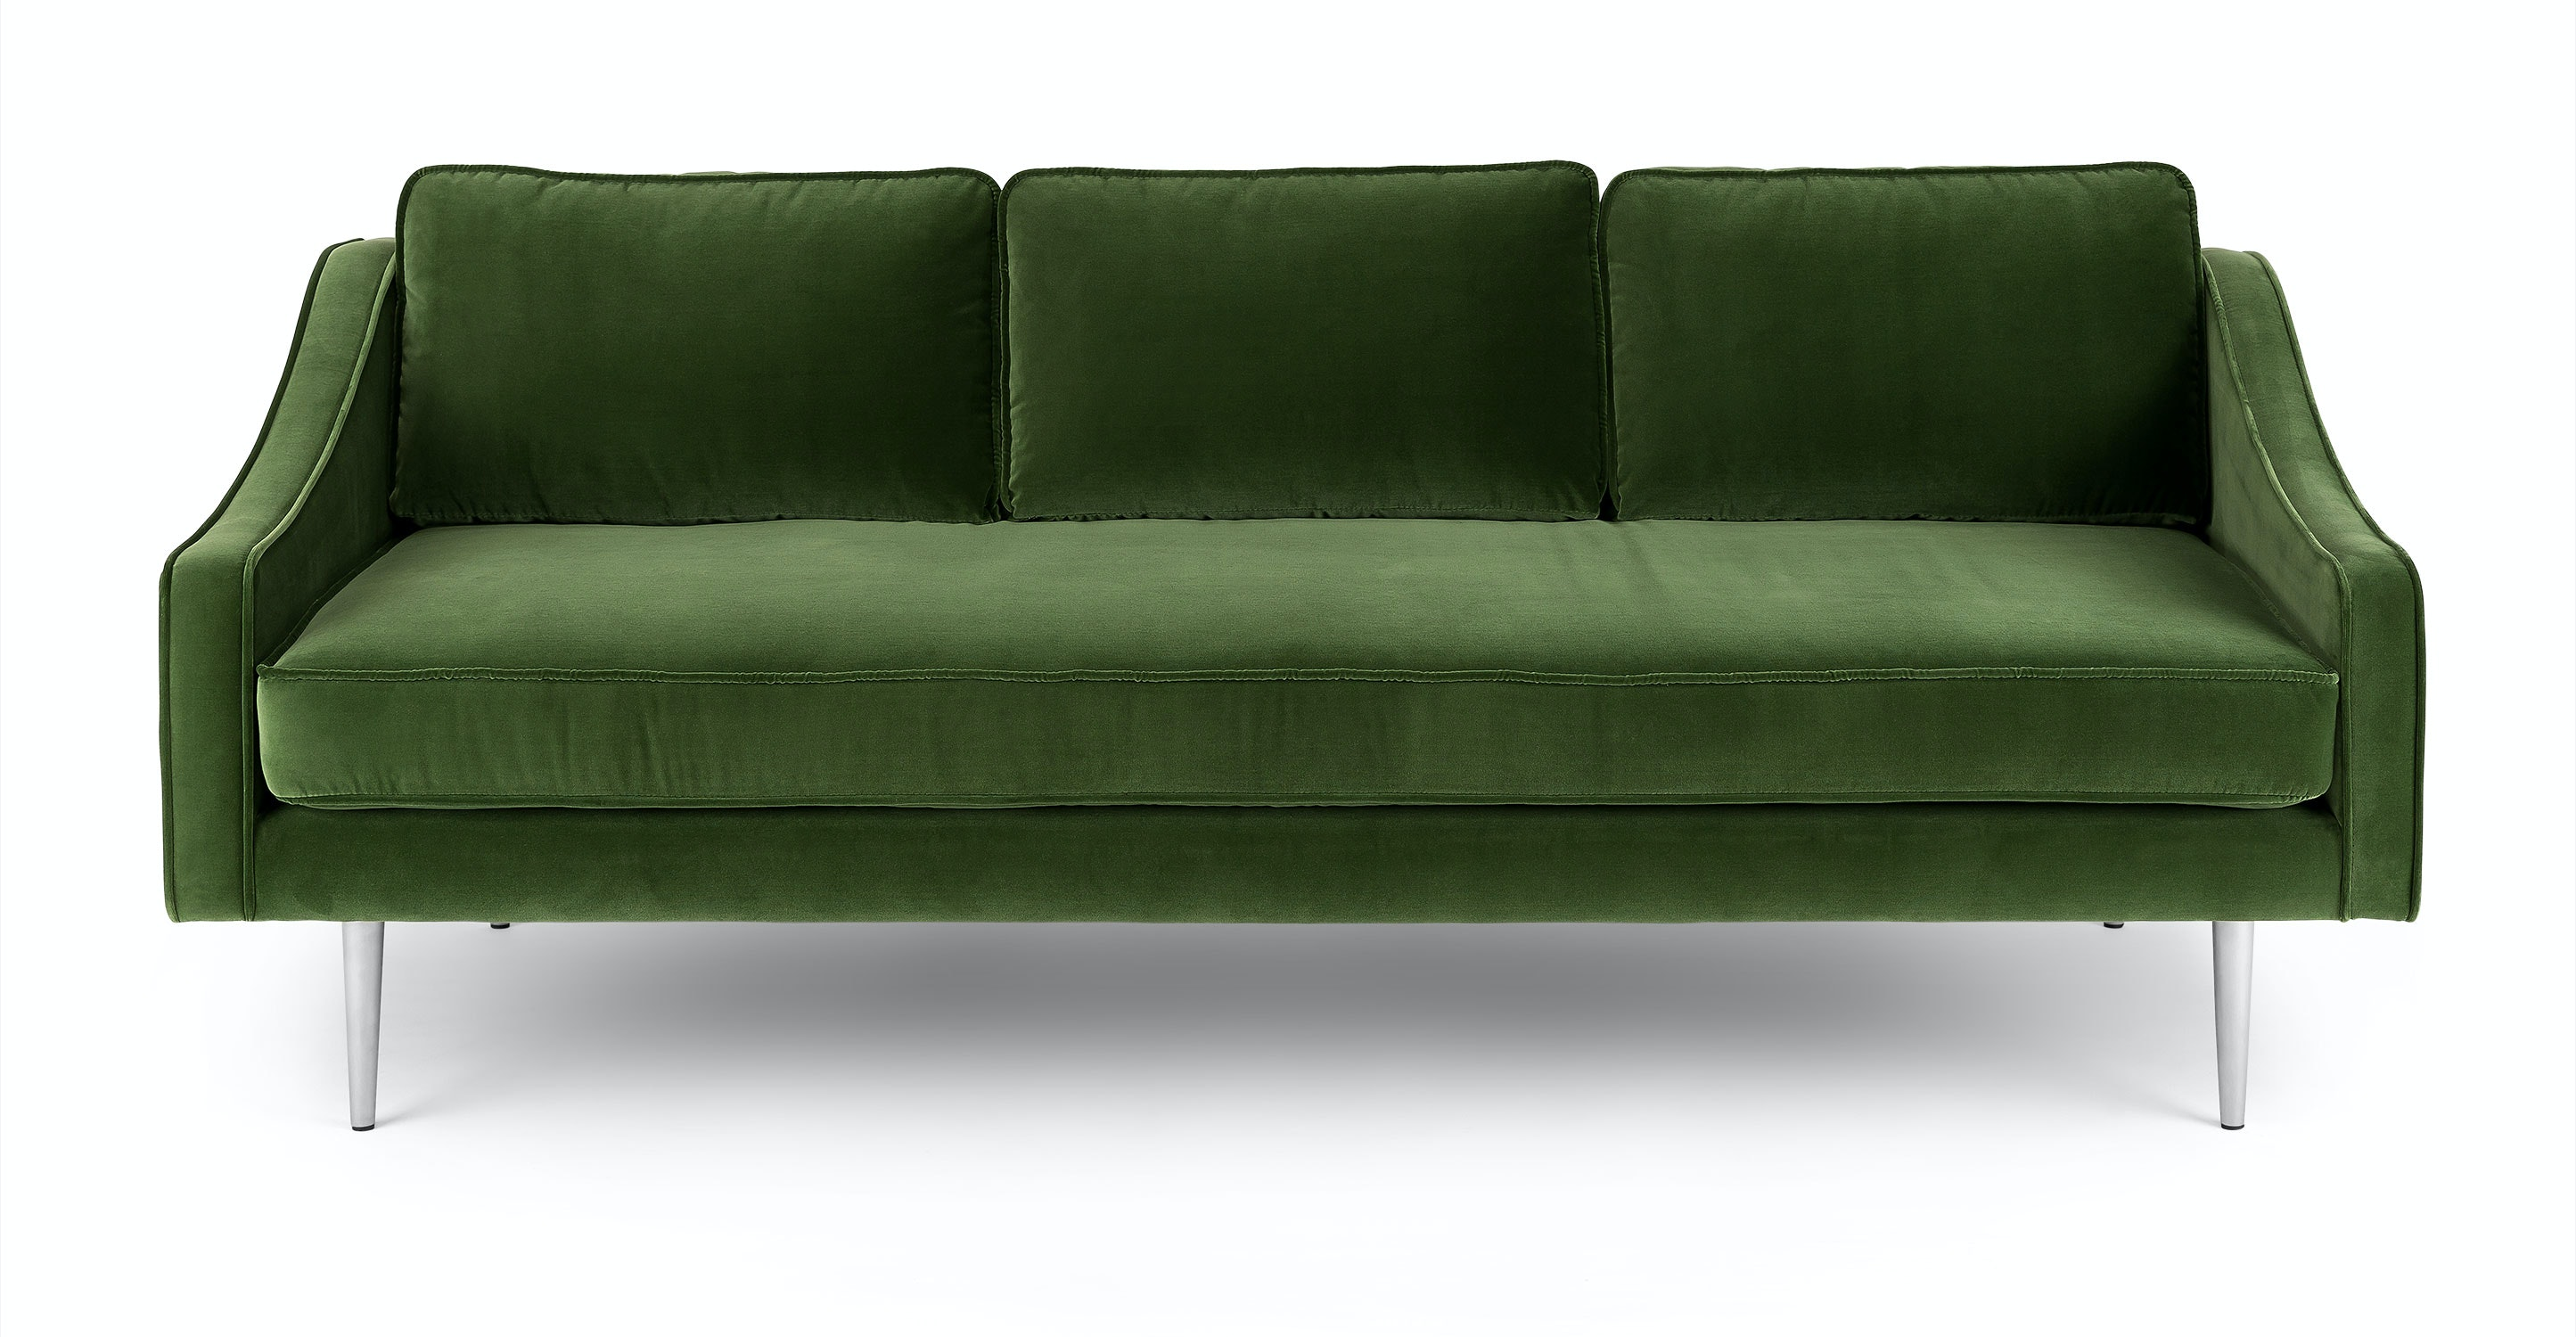 Mirage Grass Green Sofa Sofas Article Modern Mid